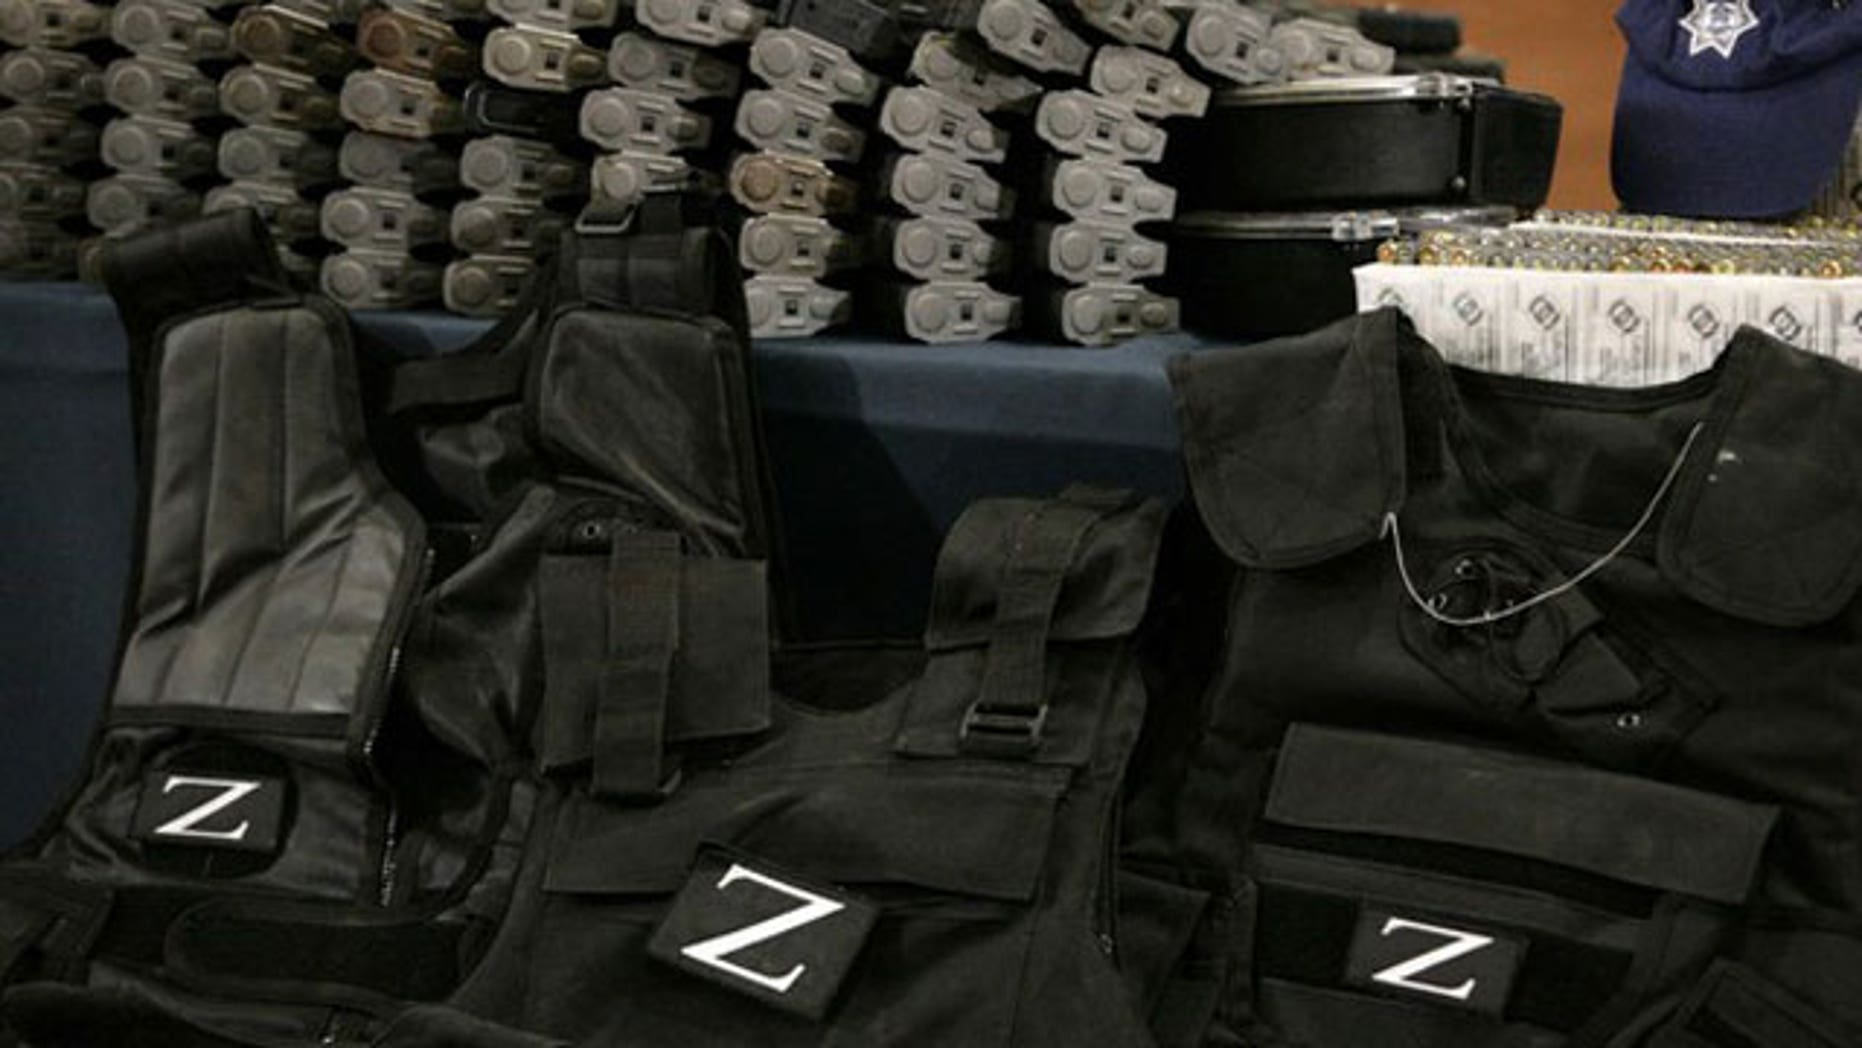 """December 13, 2011: Flak jackets with the Zetas drug cartel's """"Z"""" logo, cartridges and boxes with bullets are on display during a presentation to the media in Mexico City."""